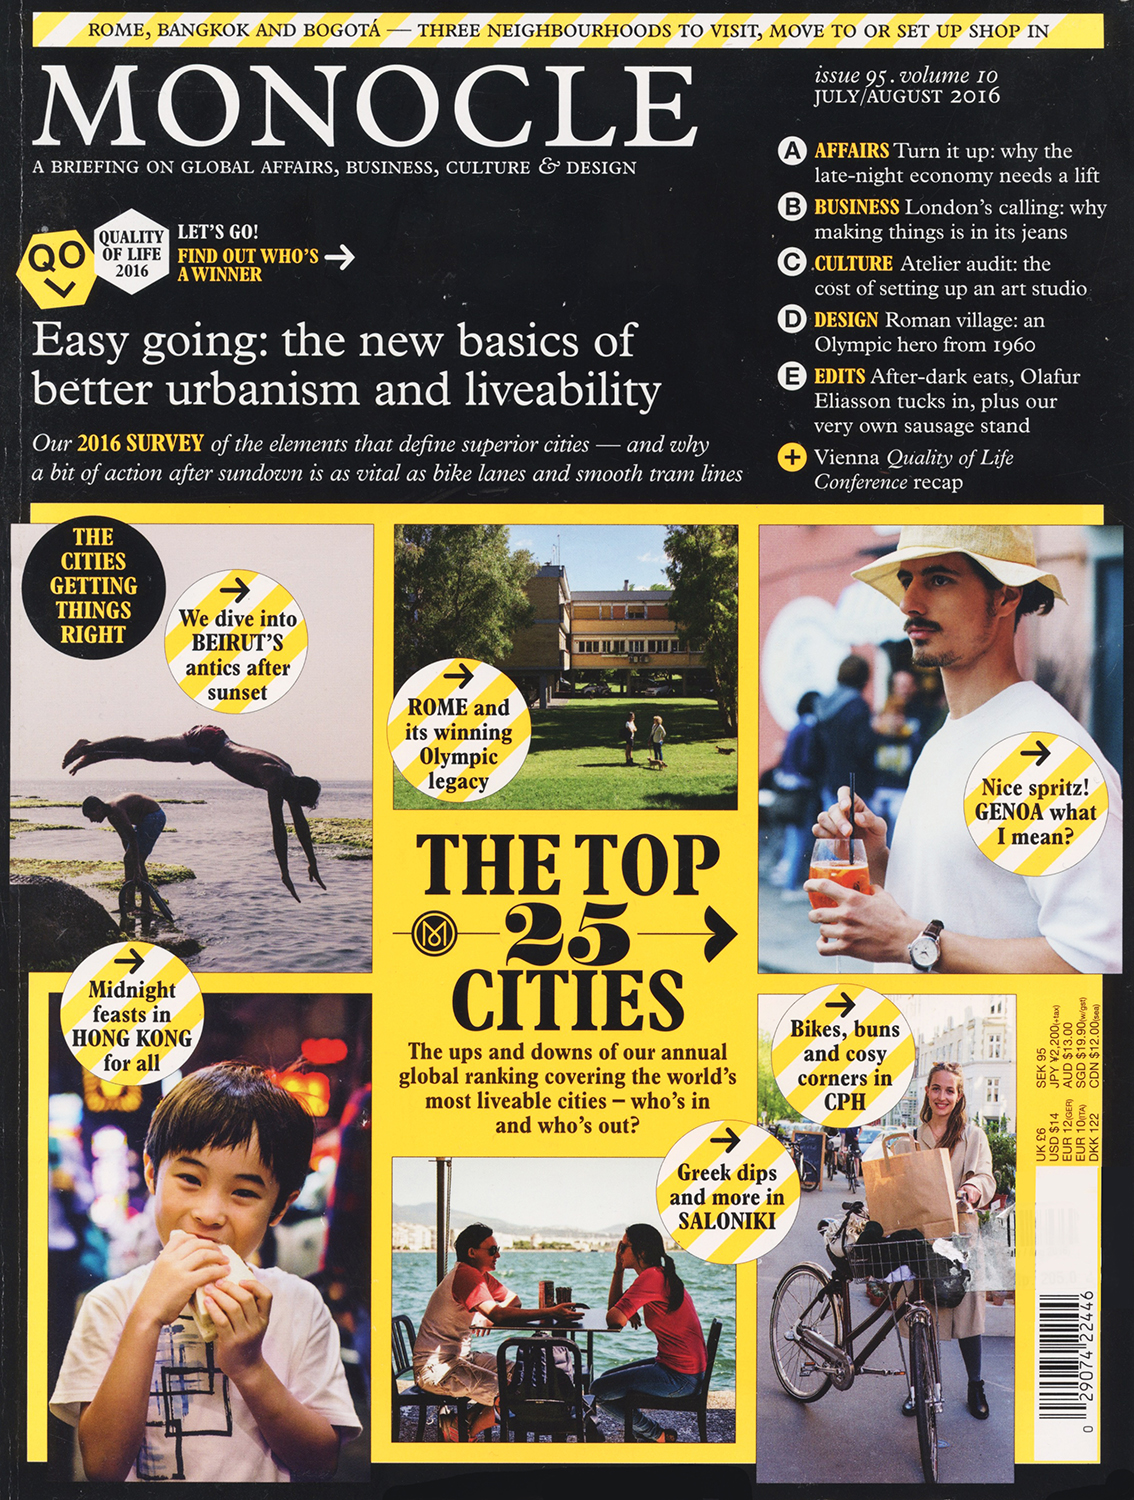 Cover story (top left image) on Beirut's corniche for Monocle.